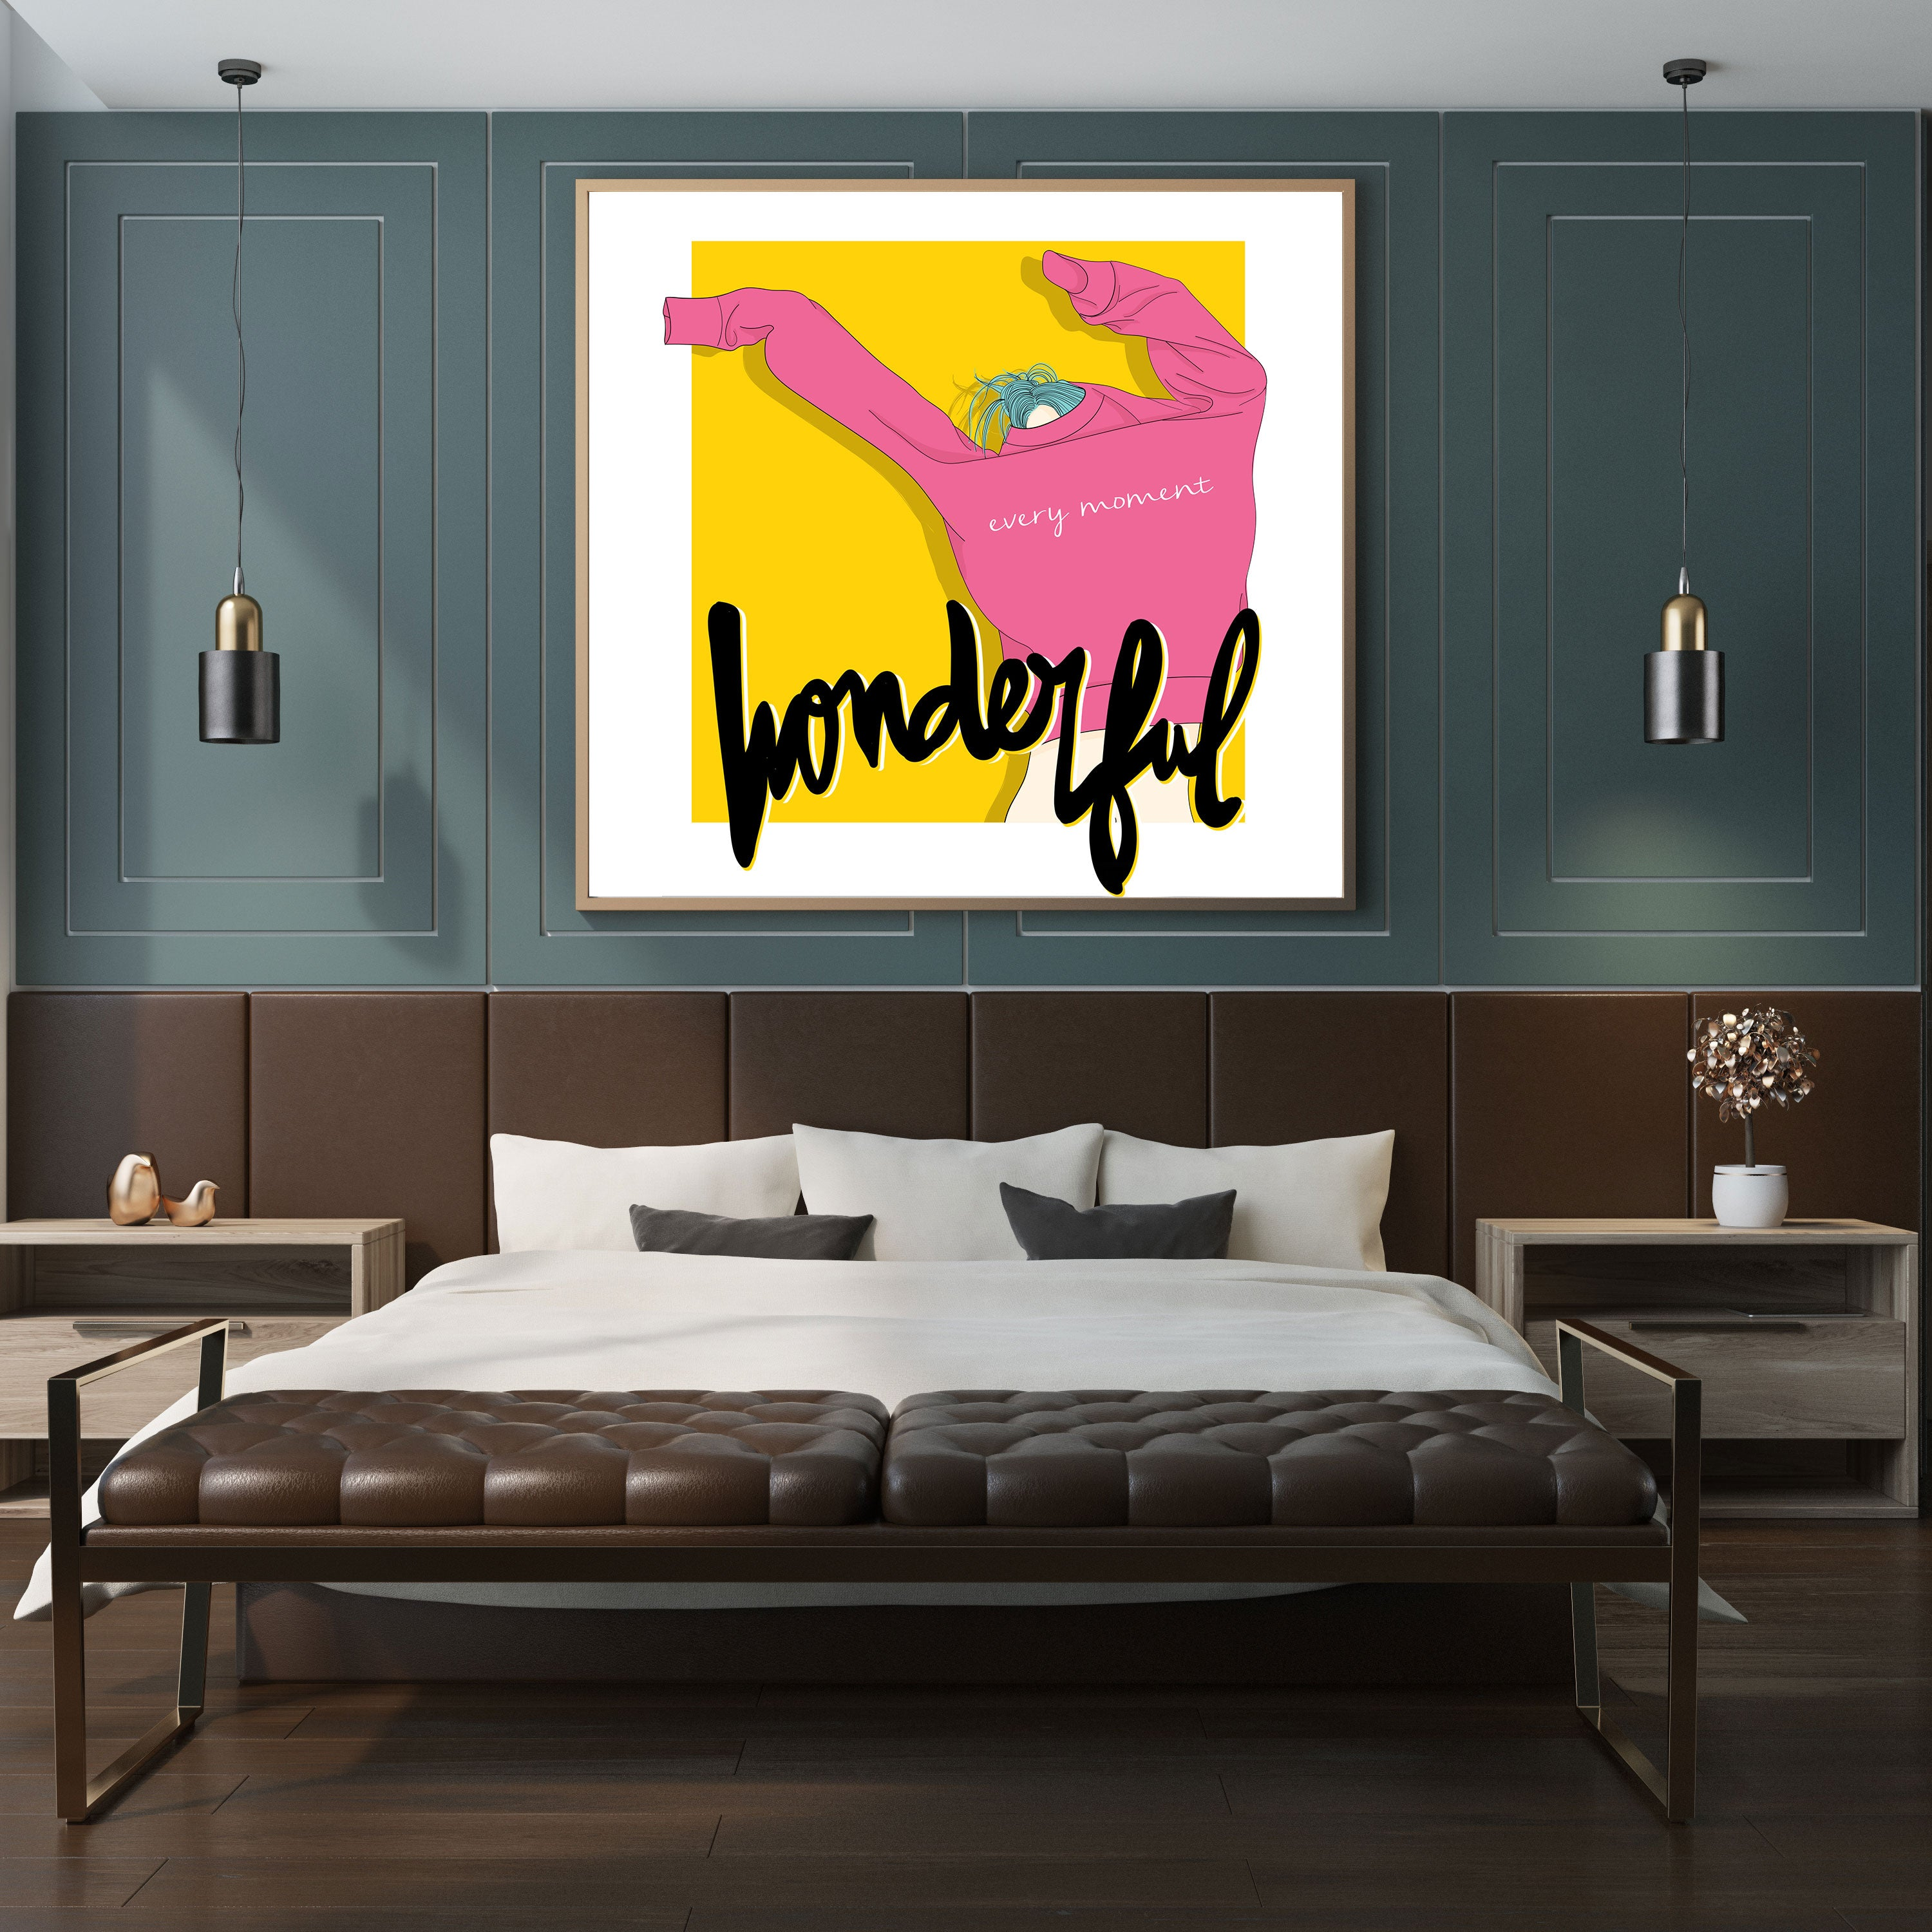 Pink and yellow poster print with a girl dressing up and the quote 'wonderful every moment'-wall view